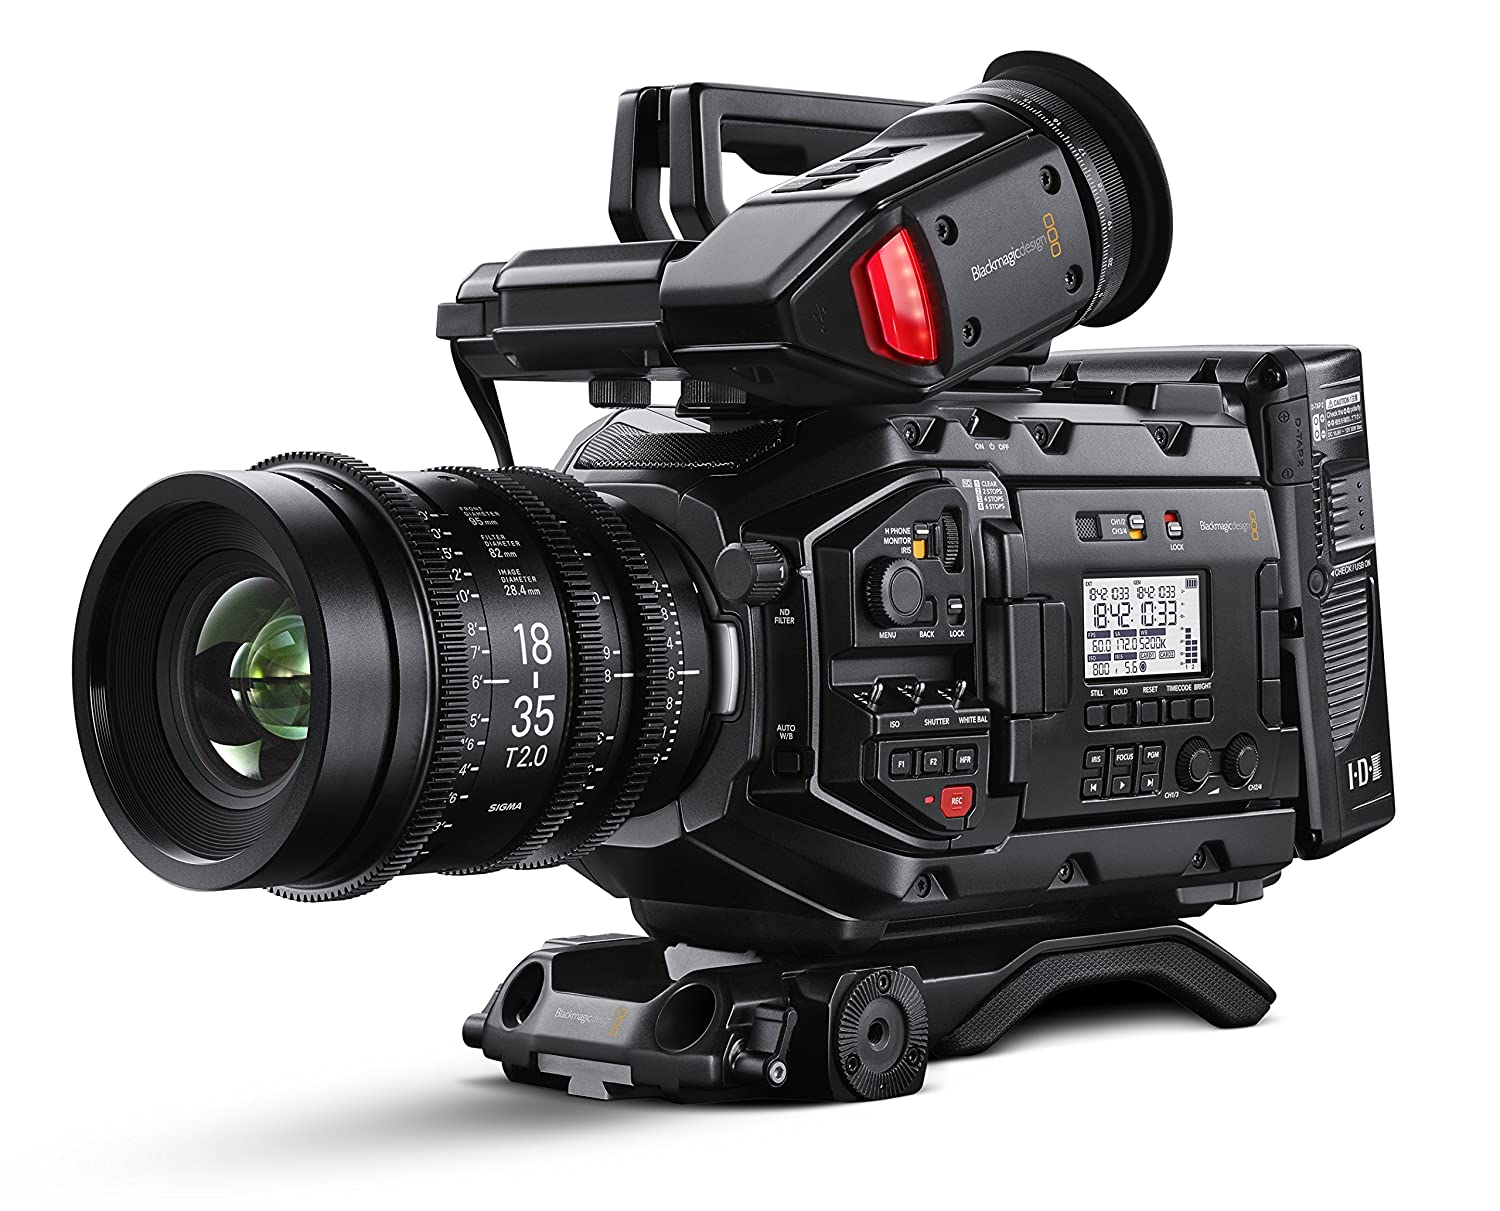 Blackmagic Design's URSA Mini Pro Camera